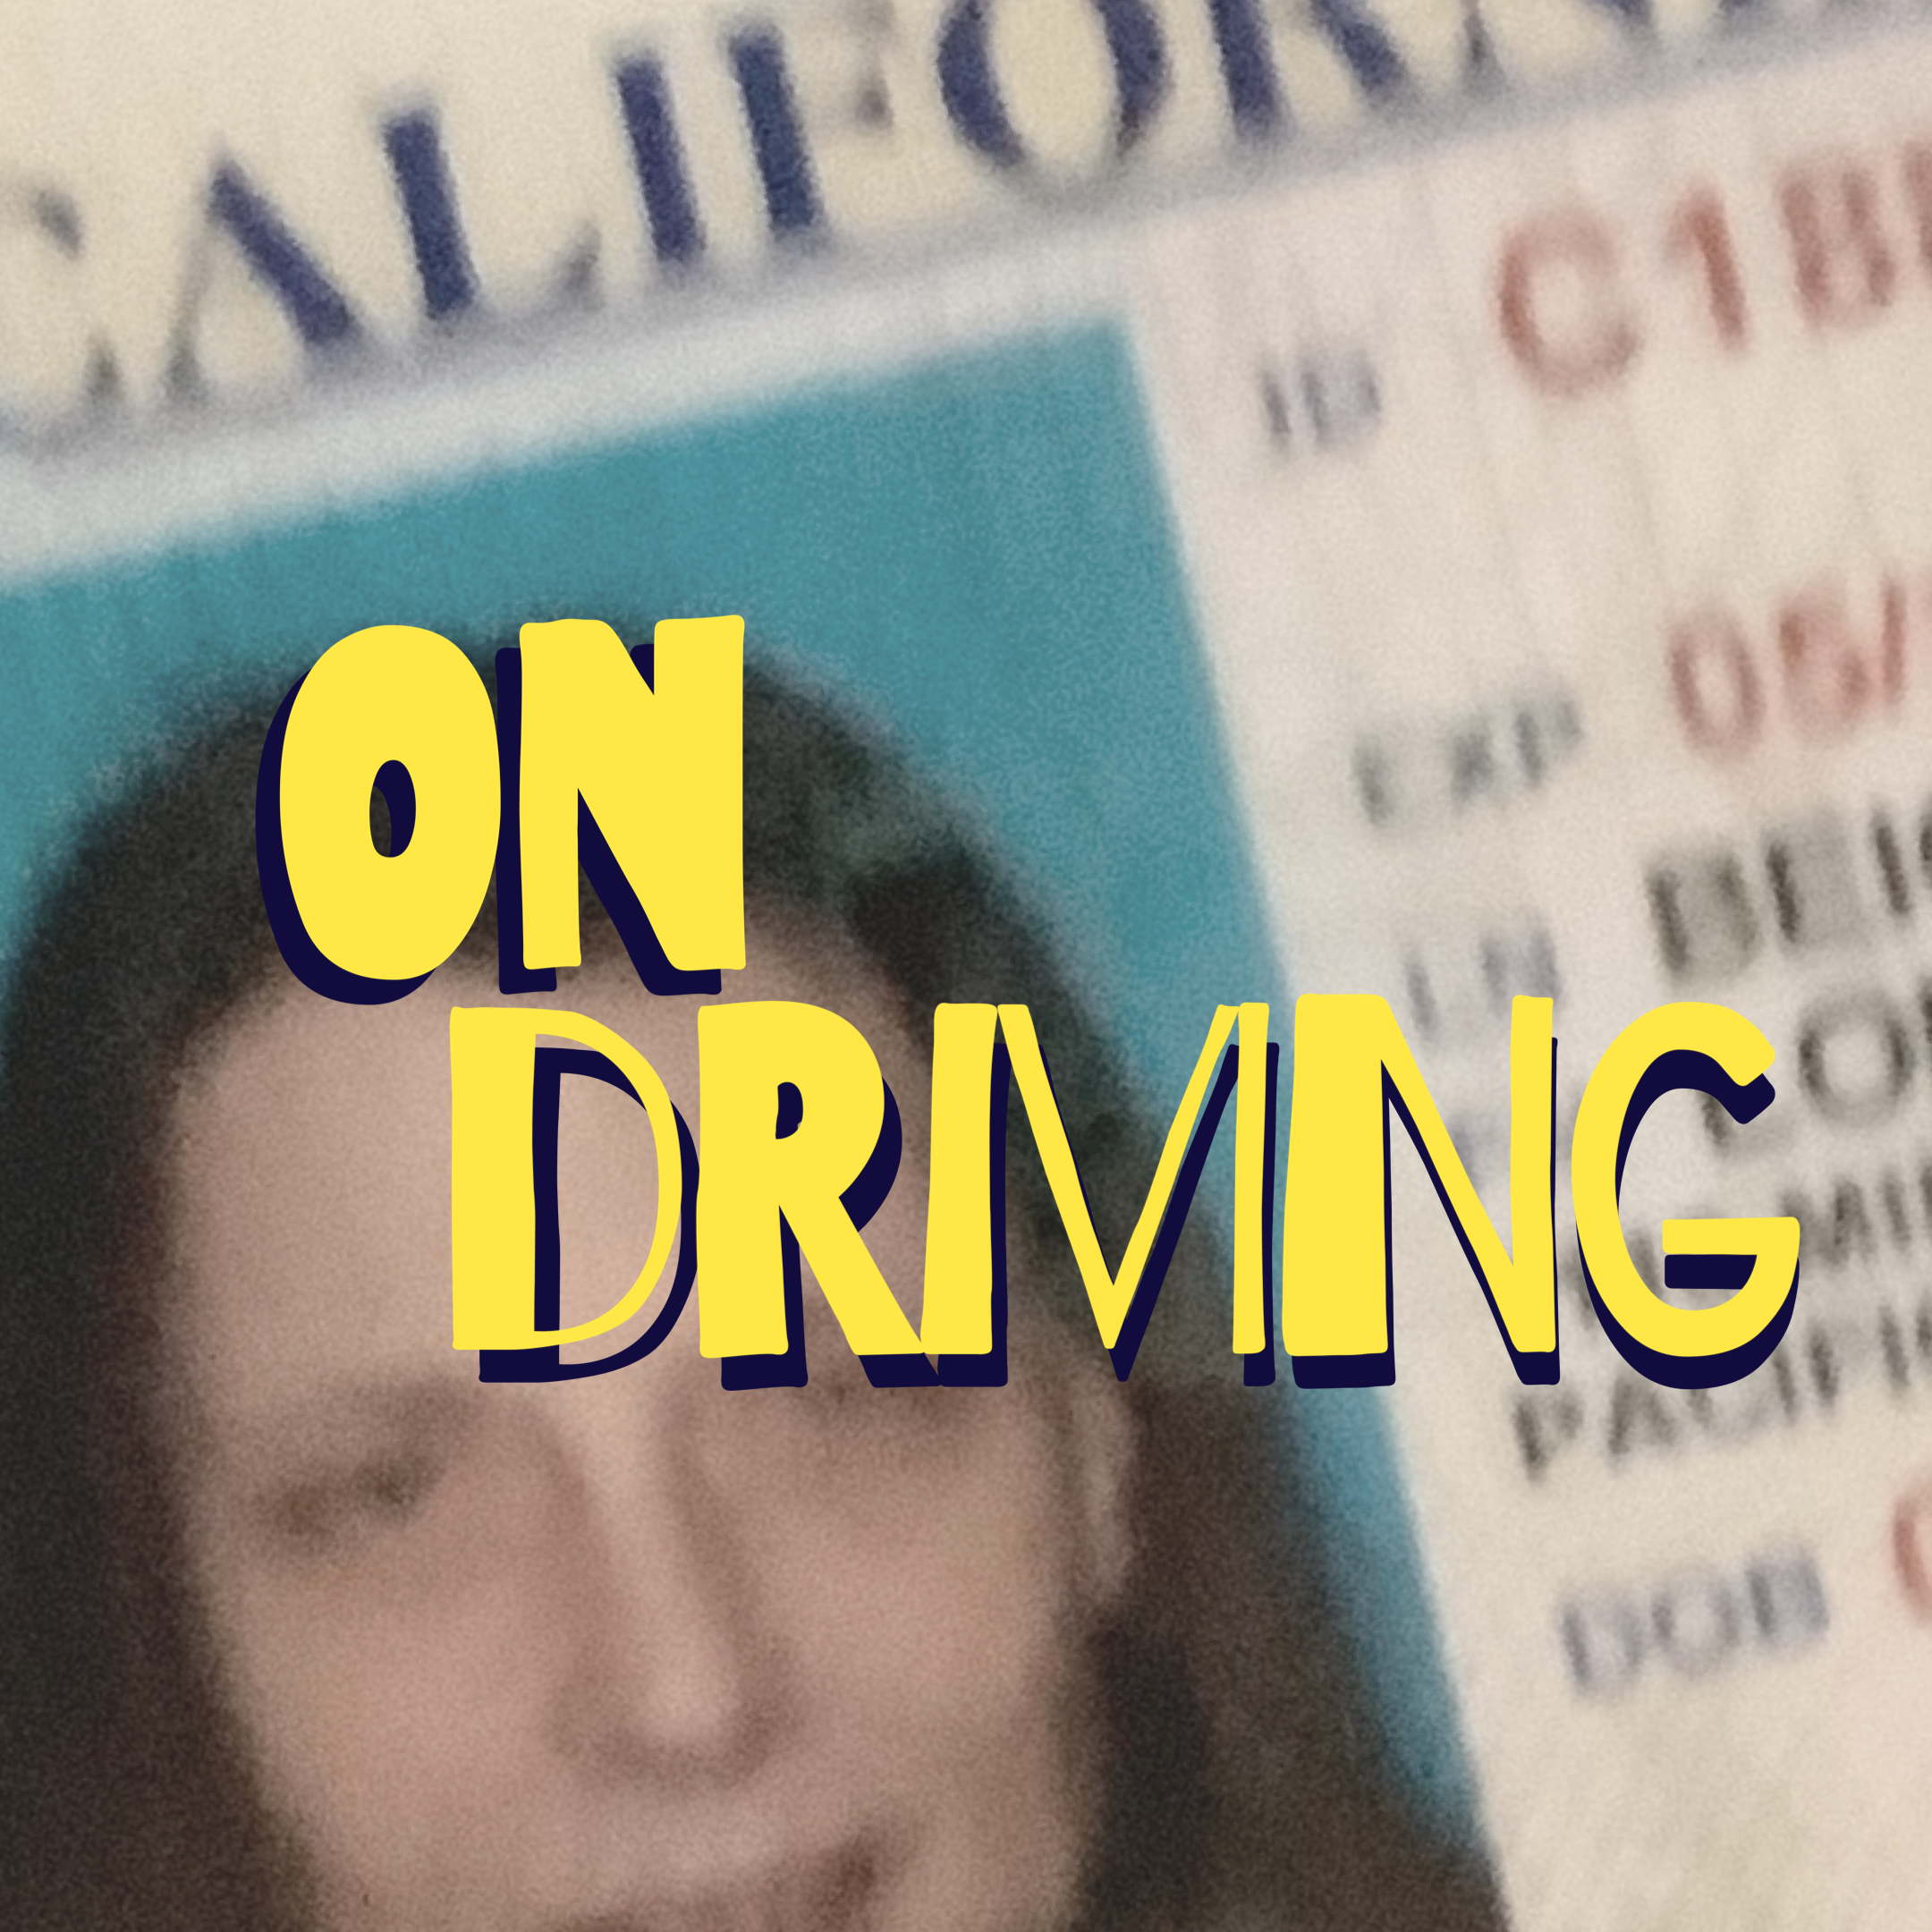 on driving in yellow letters over close up of drivers license